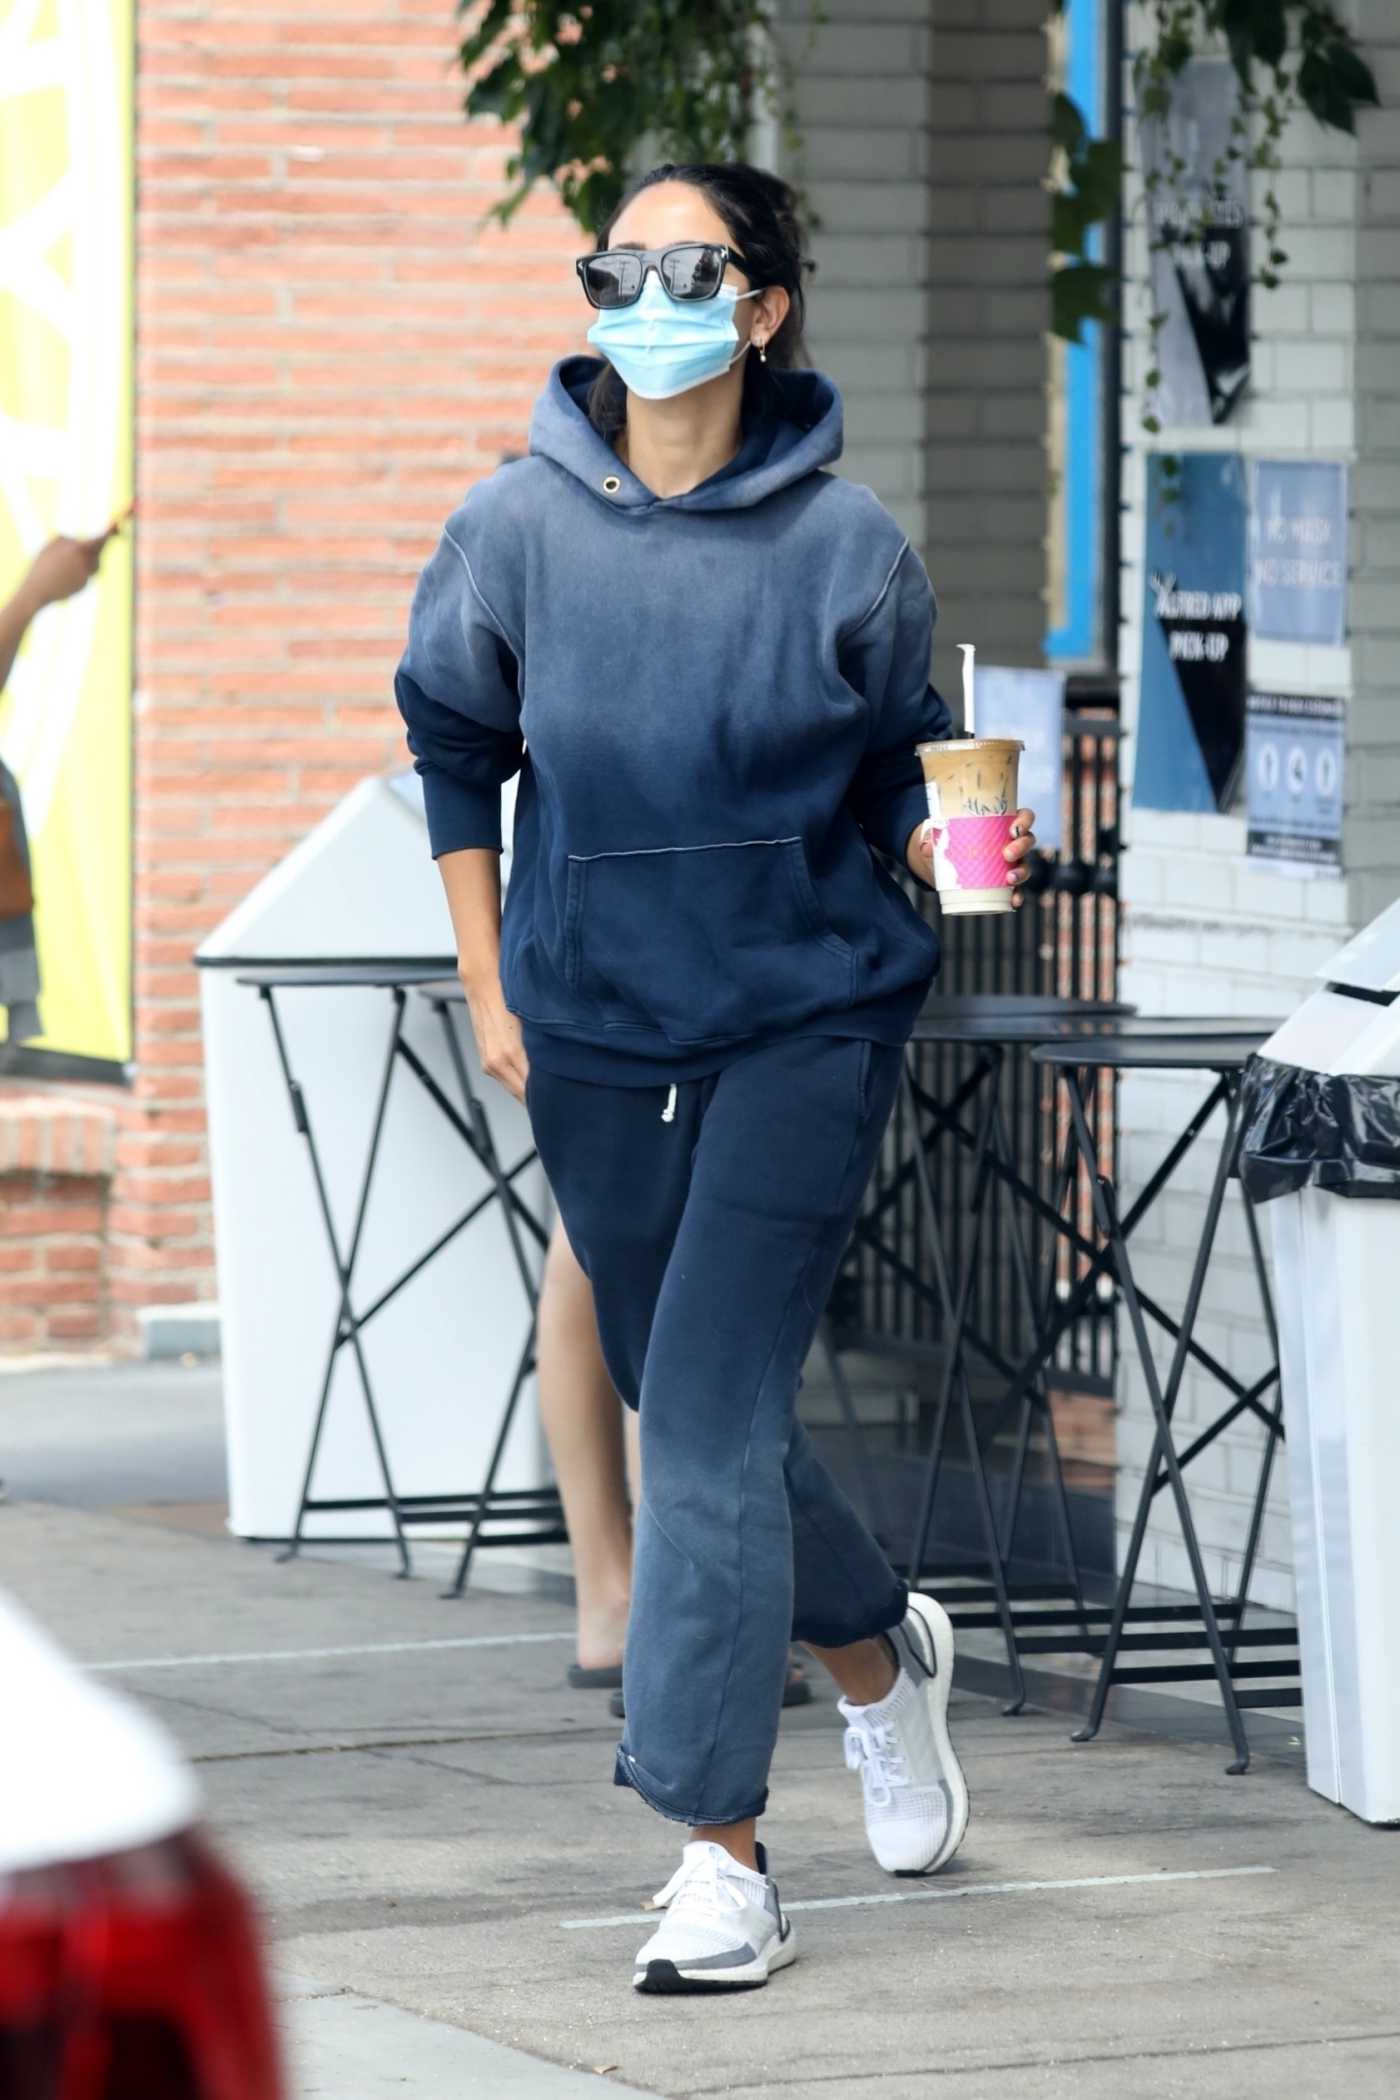 Eiza Gonzalez in a Black Hoody Makes a Stop at a Local Cafe in Los Angeles 08/13/2020